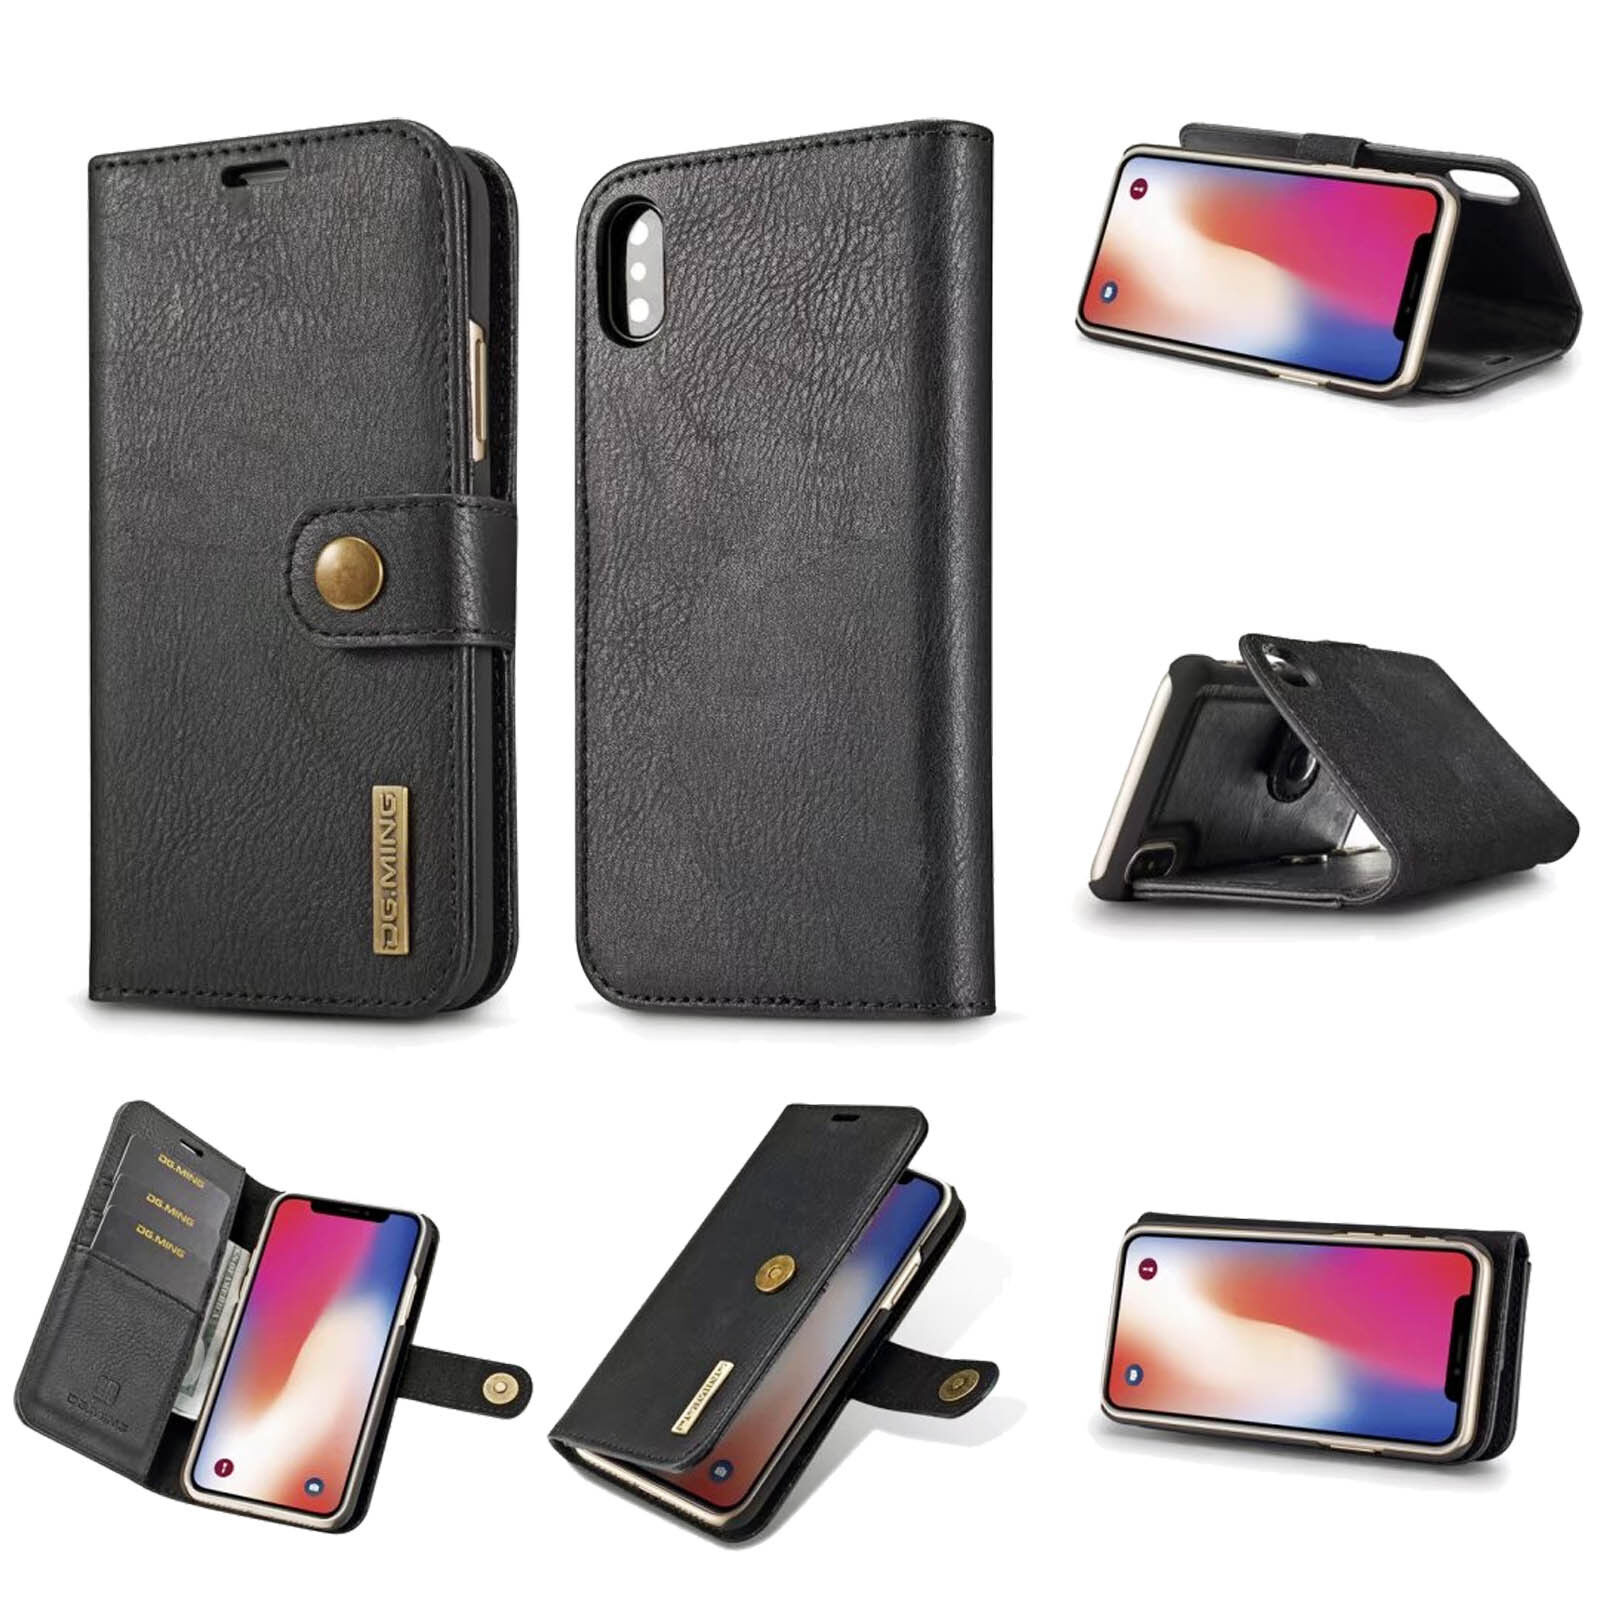 Leather Smart Phone Case Card Wallet for iPhone 6/7/8/8 Plus